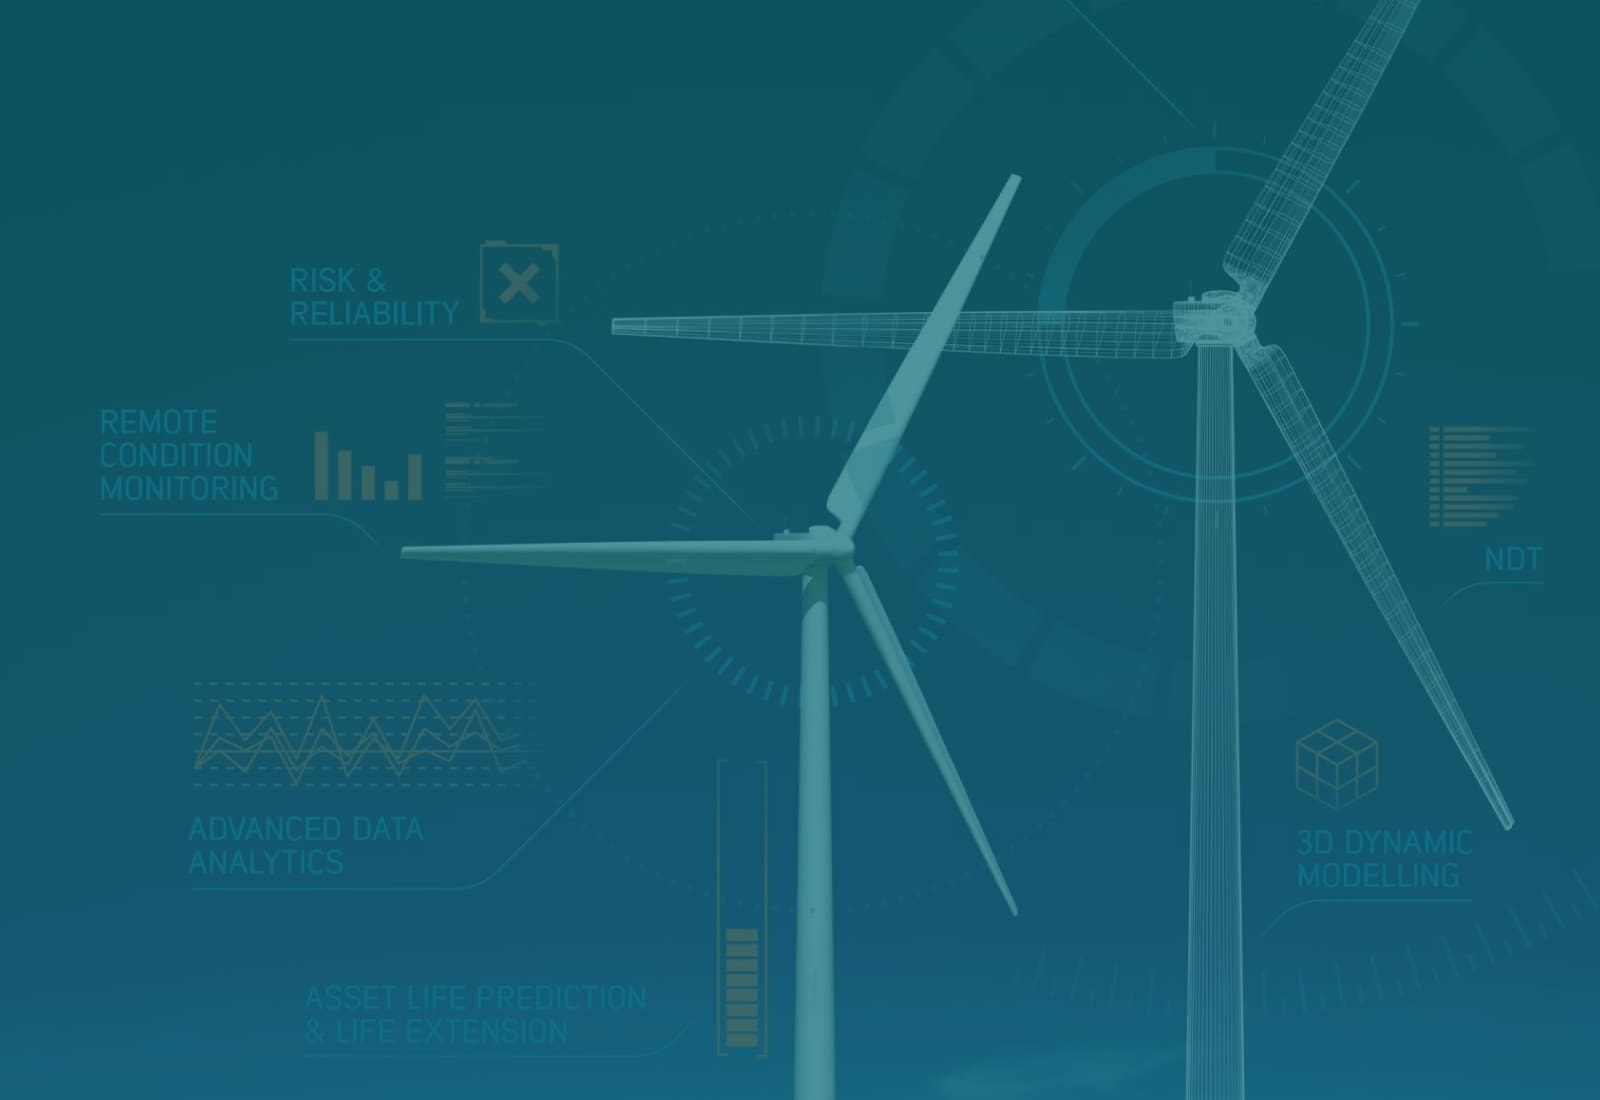 Codewave builds energy intelligence apps, bringing real time monitoring and actionable data on to web and mobile to improve generation